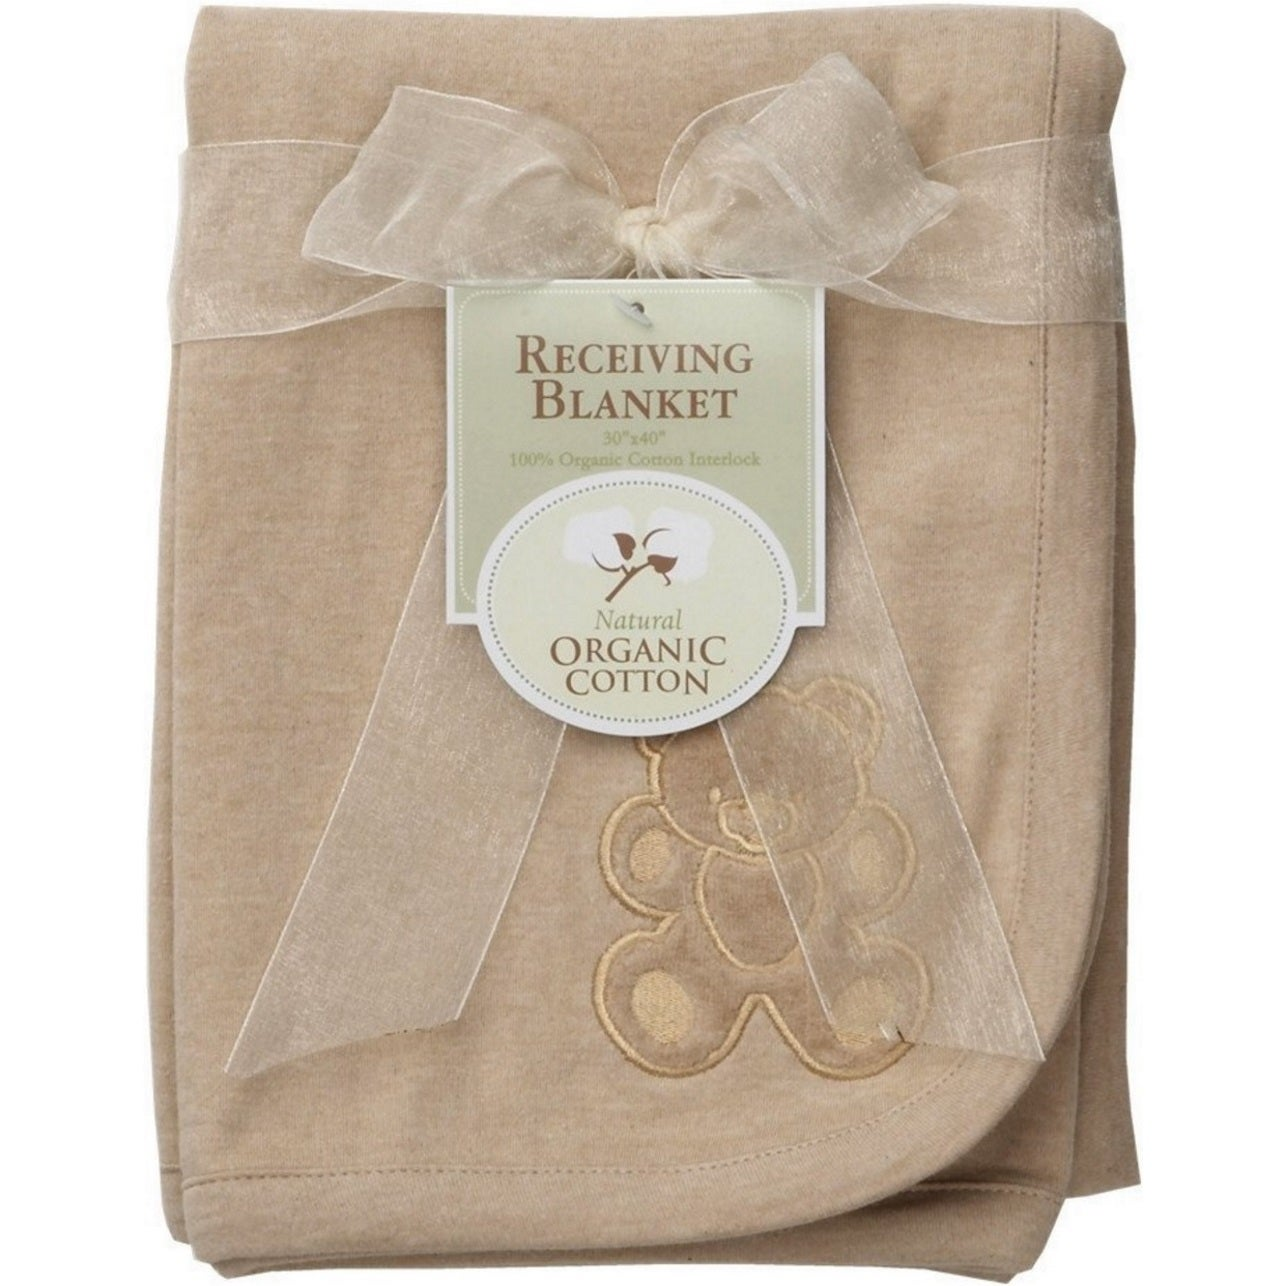 American Baby Organic Receiving Blanket Embroidery Blanke...